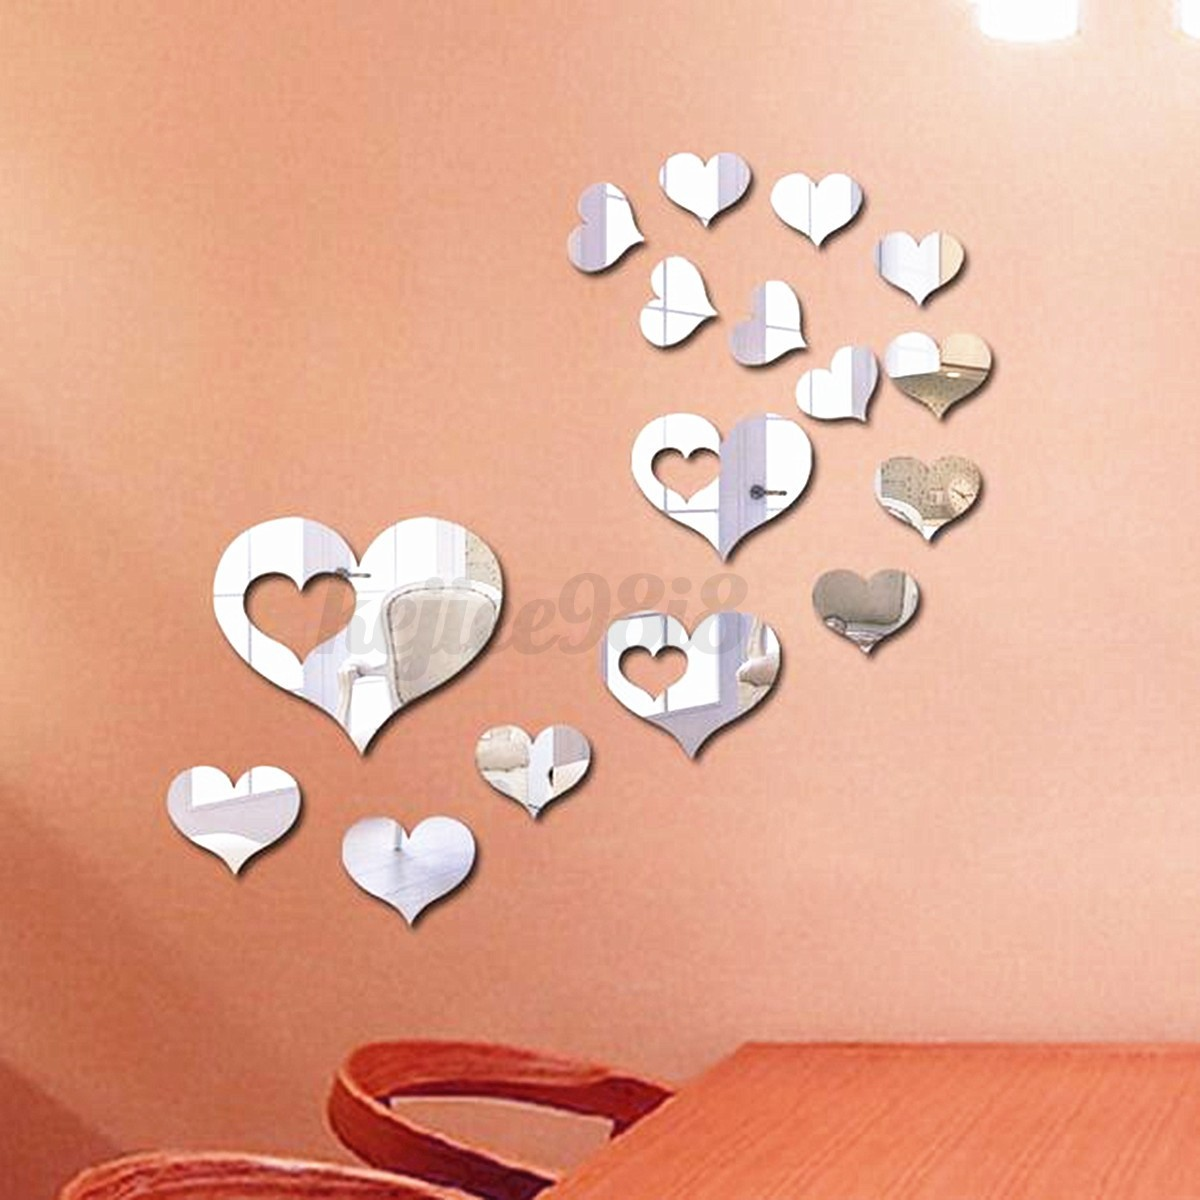 Heart Mirror Tile Decal Sticker Wall Art Craft Acrylic Self Adhesive Mosaics DIY